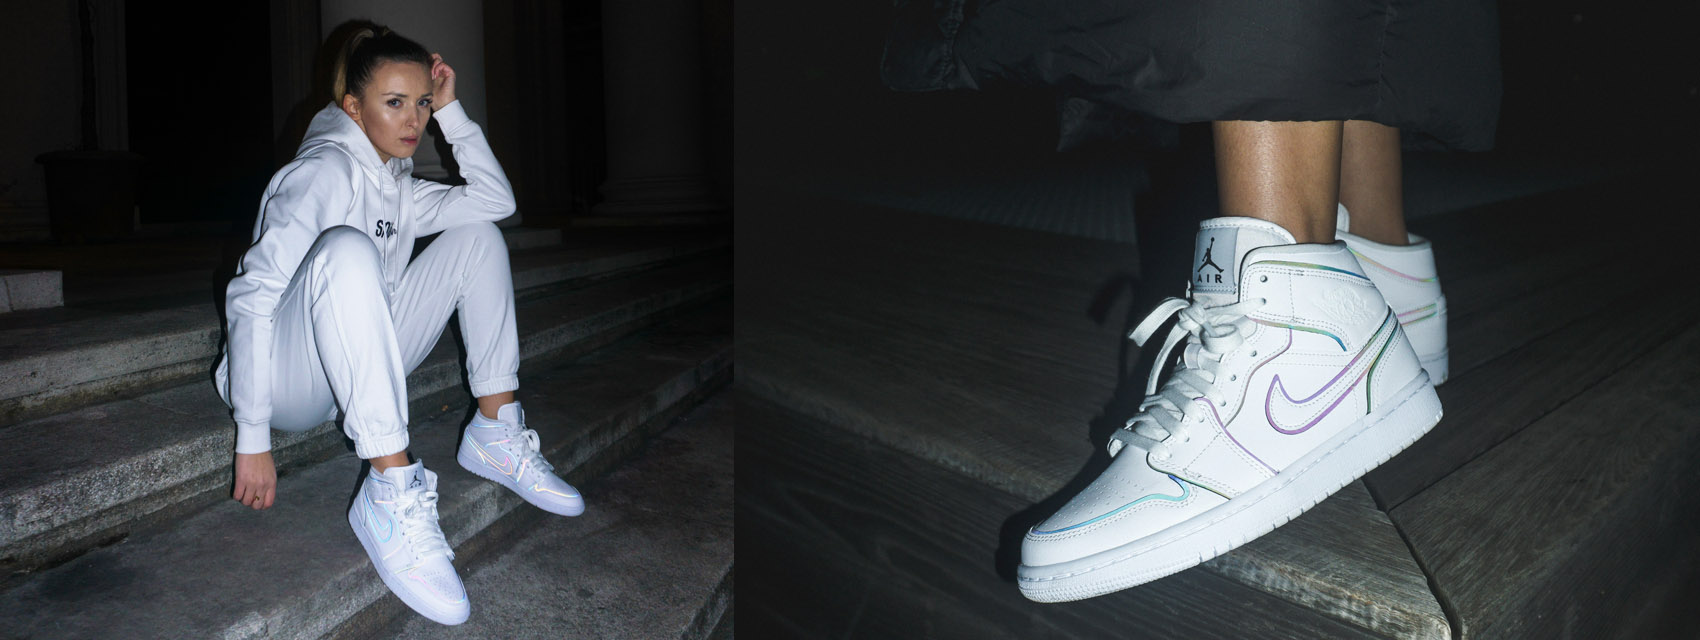 air jordan 1 mid se iridescent reflective